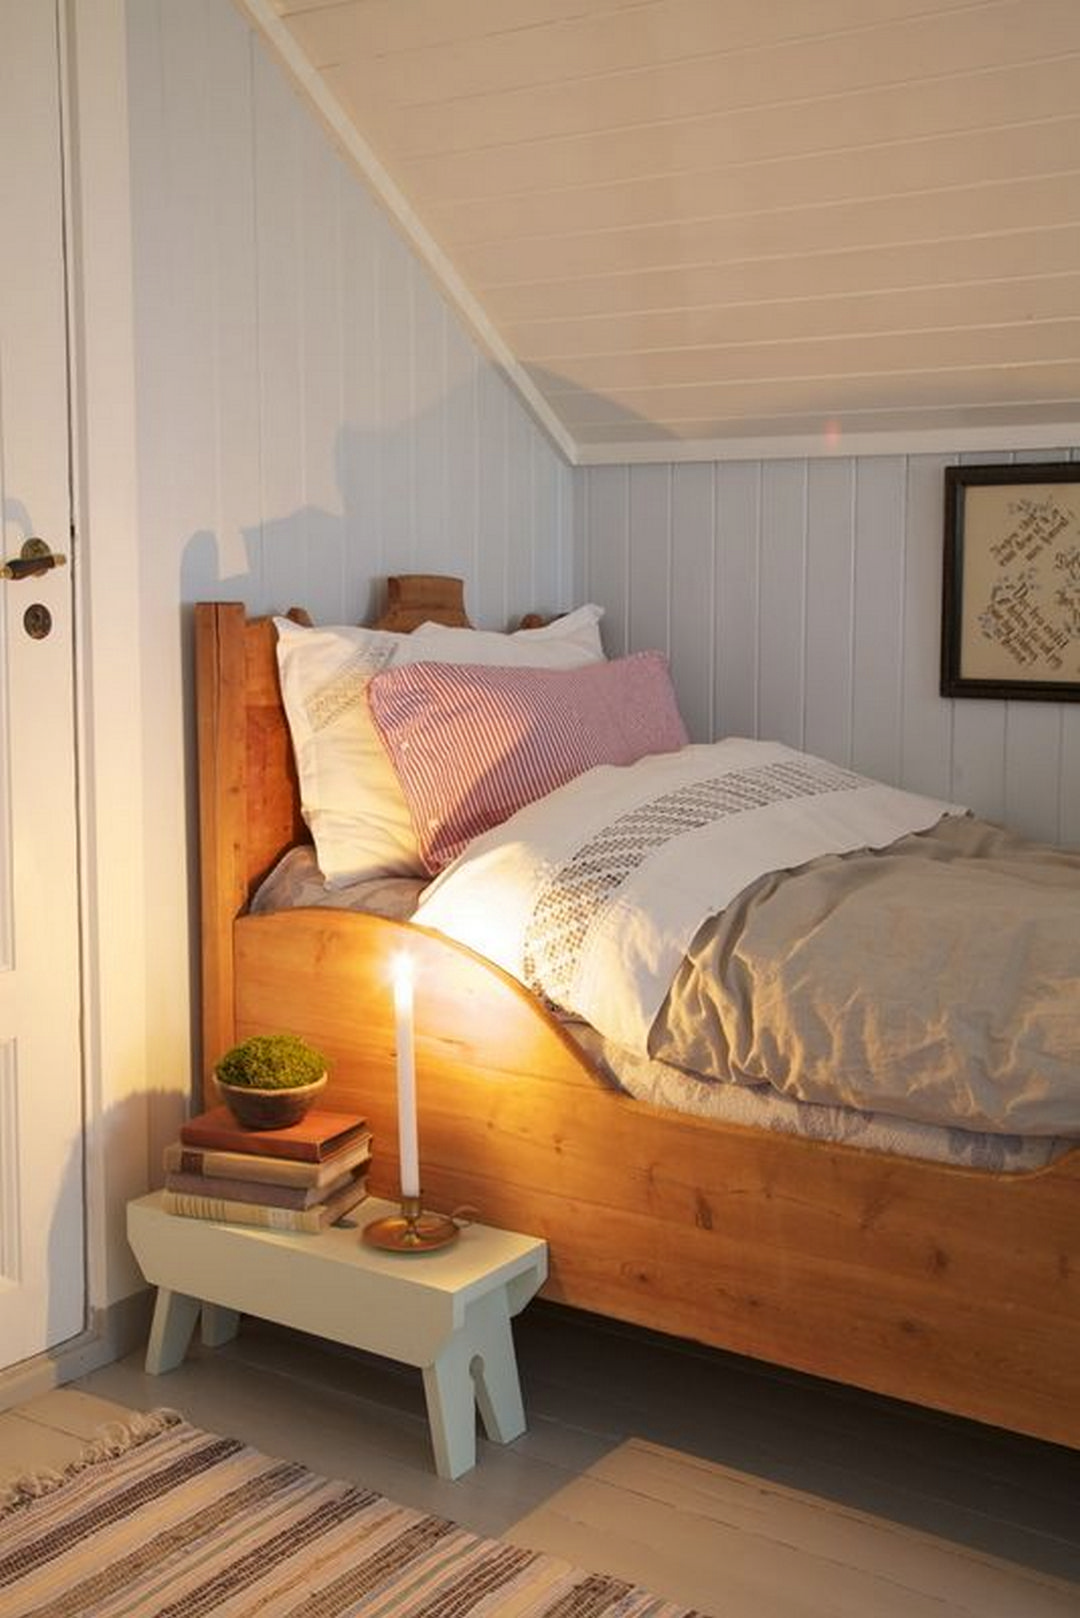 Interior Design Small Rooms: Cozy Small Bedroom Tips: 12 Ideas To Bring Comforts Into